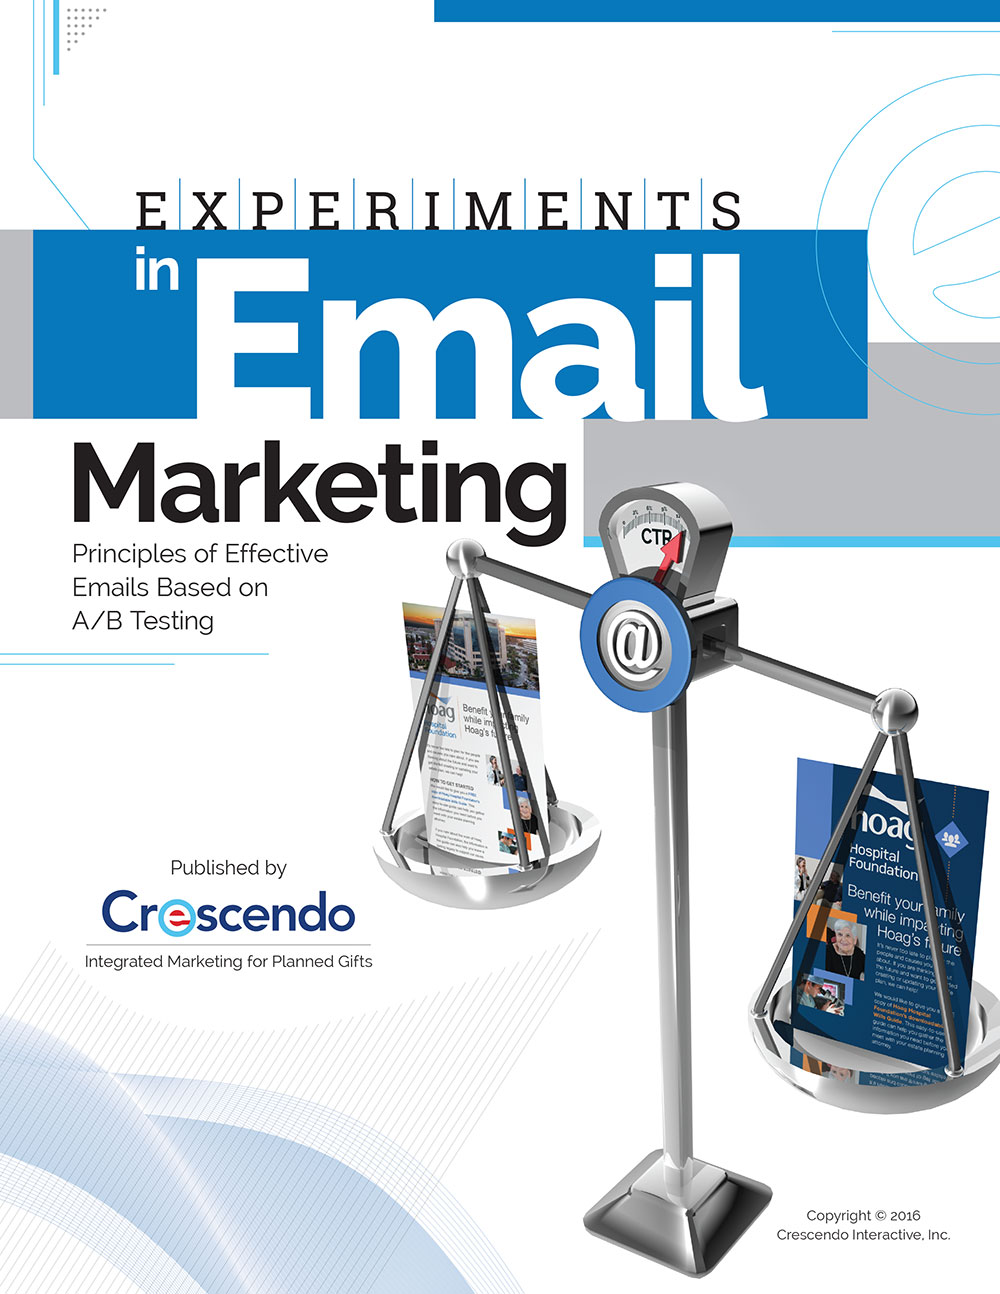 Experiments in Email Marketing: Principles of Effective Emails Based on A/B Testing